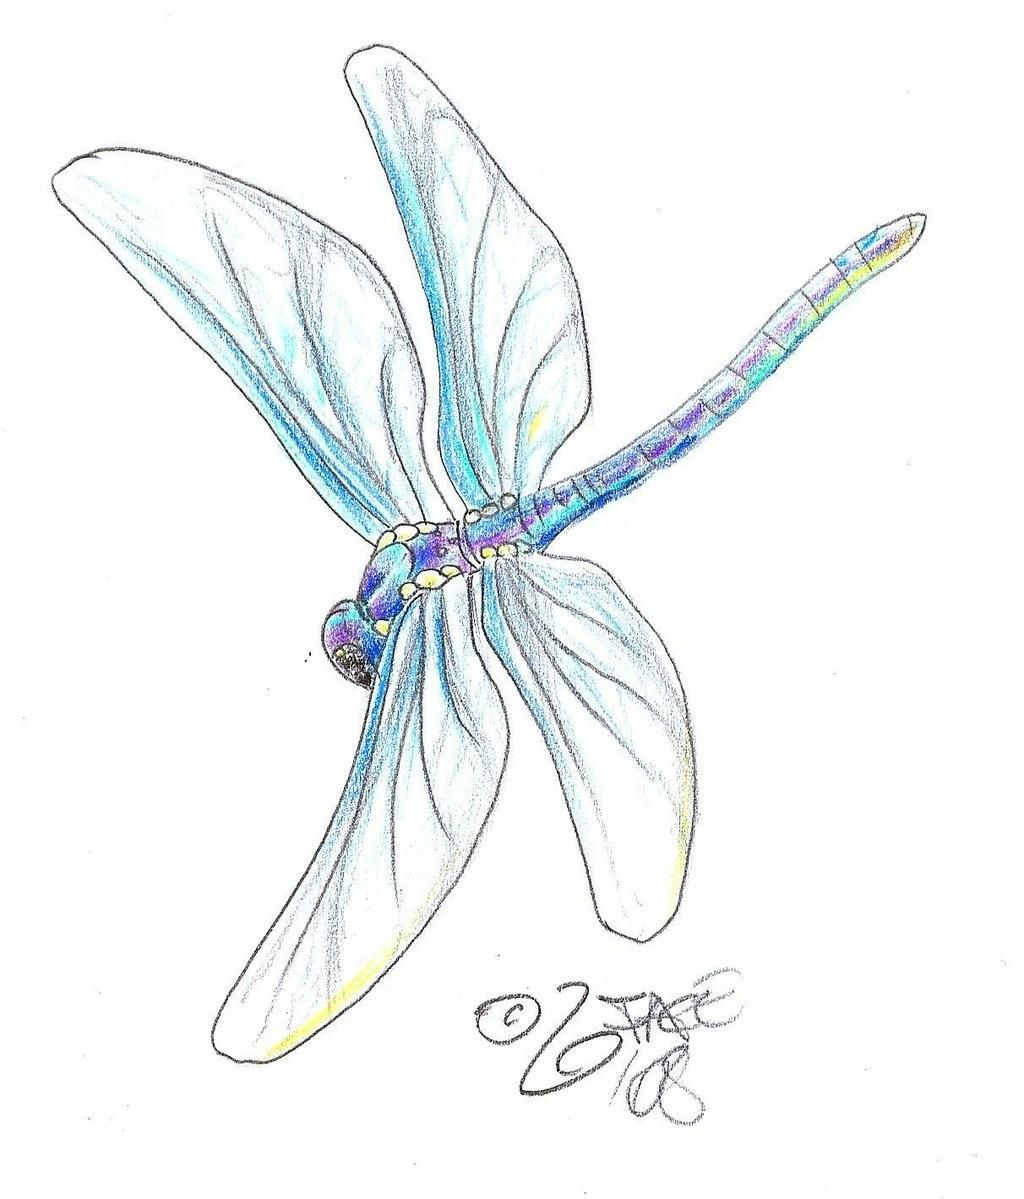 Dragonfly Pencil Drawing Nice Picture トンボイラスト 書き方